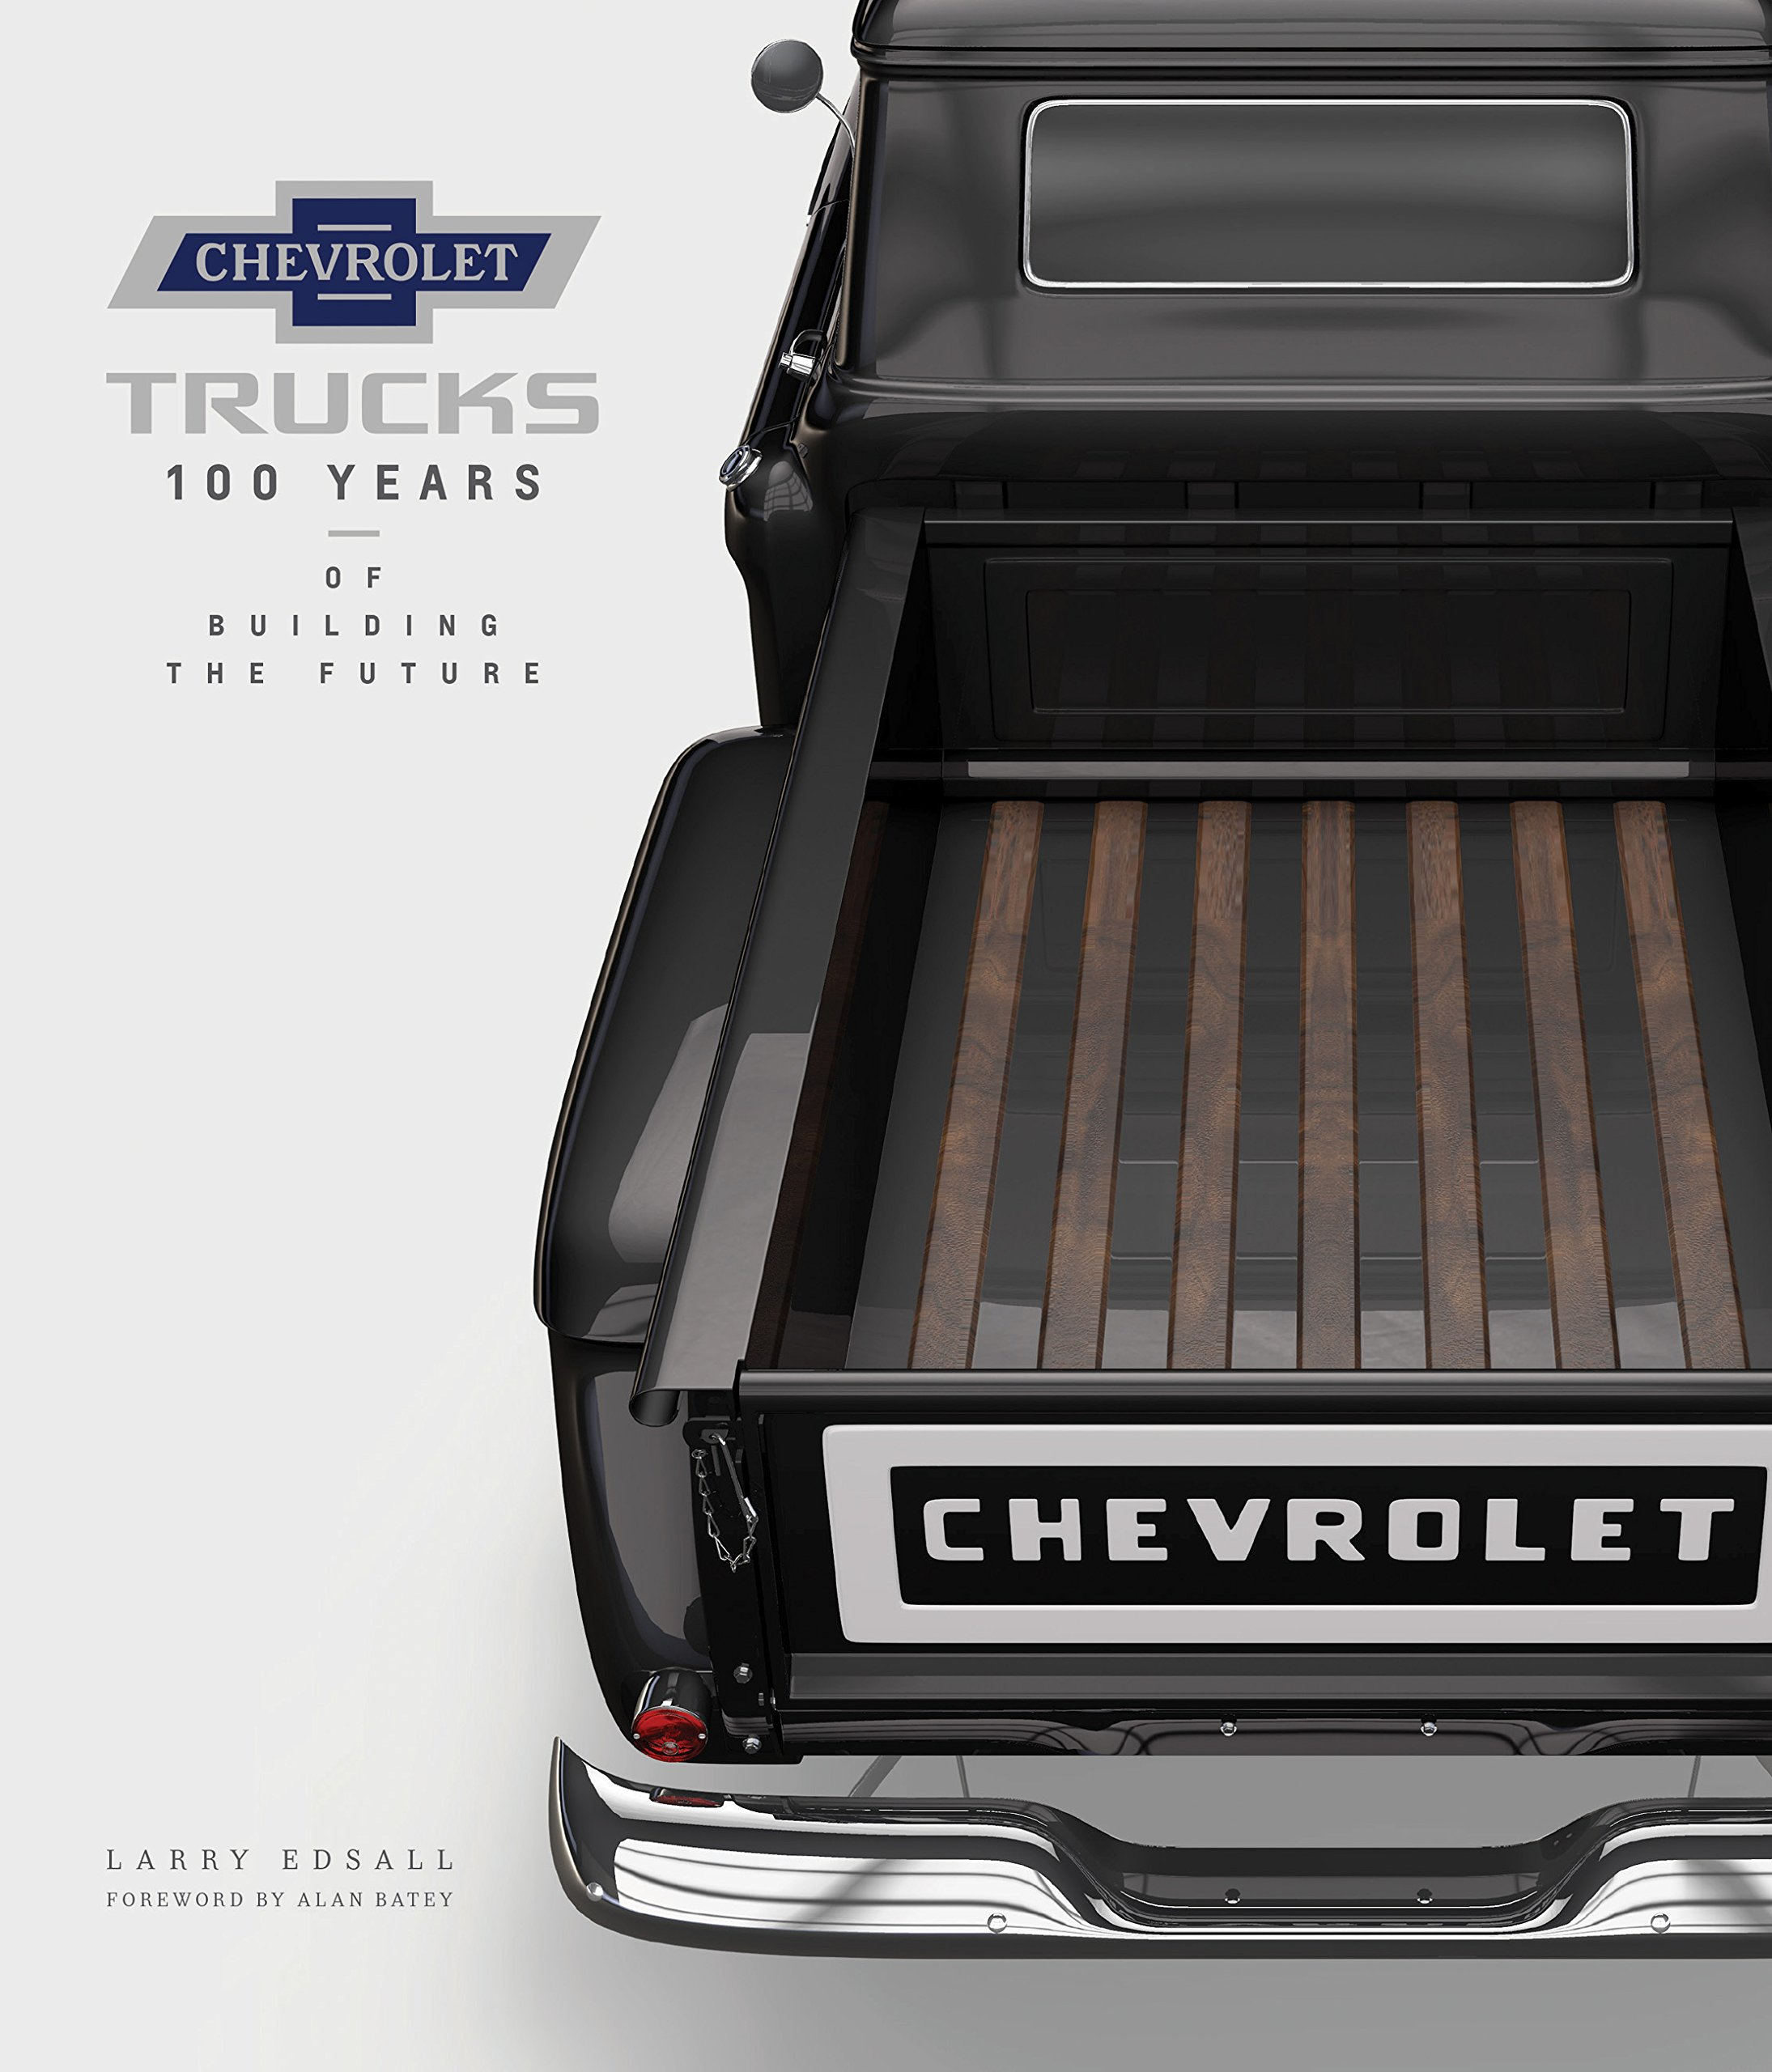 Chevrolet Trucks: 100 Years of Building the Future: Larry Edsall, Alan  Batey: 9780760352489: Amazon.com: Books